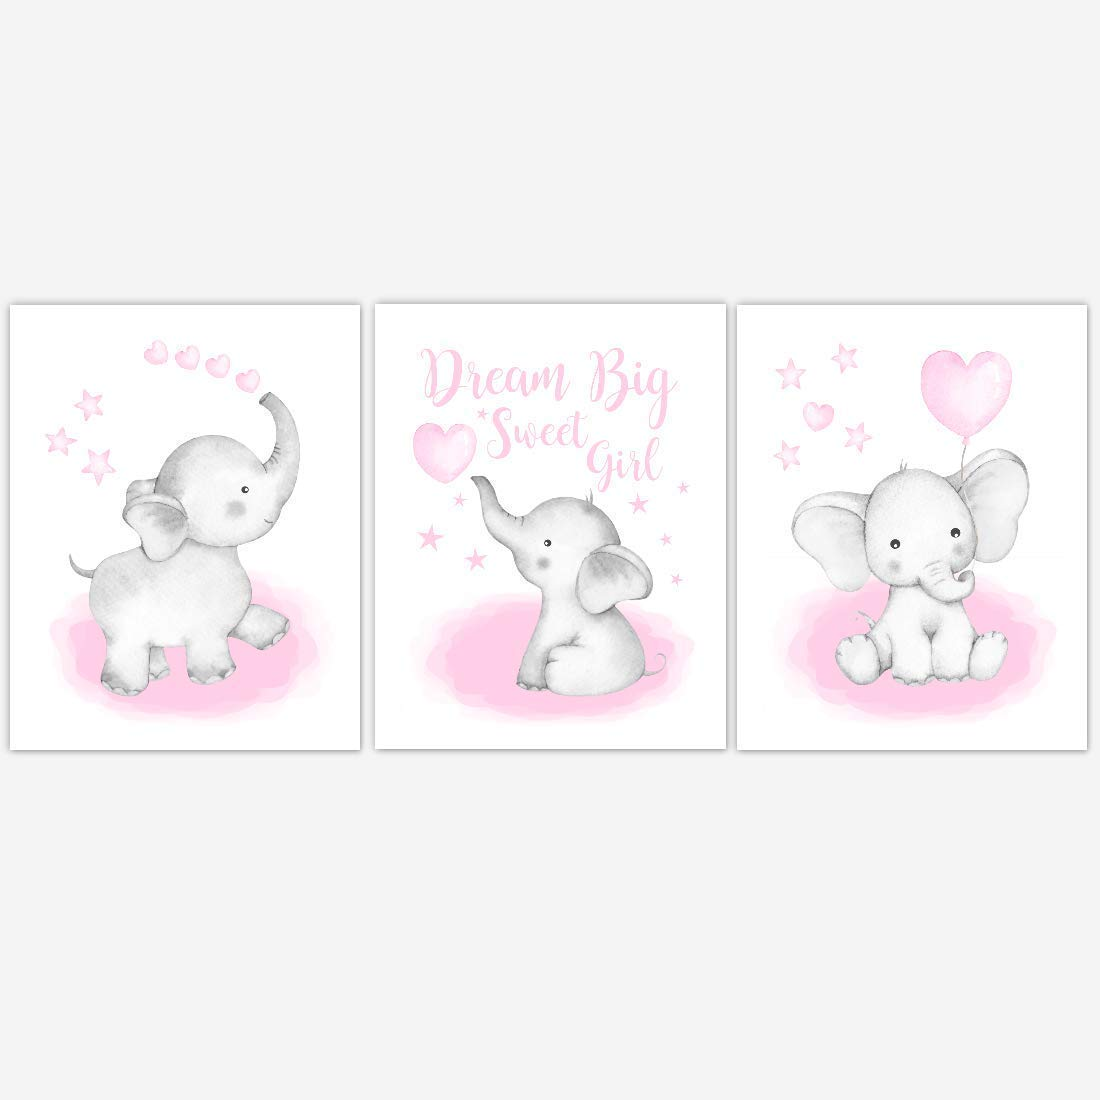 Watercolor Pink Elephant With Balloon Baby Girl Nursery Art Wall Decor 3 UNFRAMED PRINTS